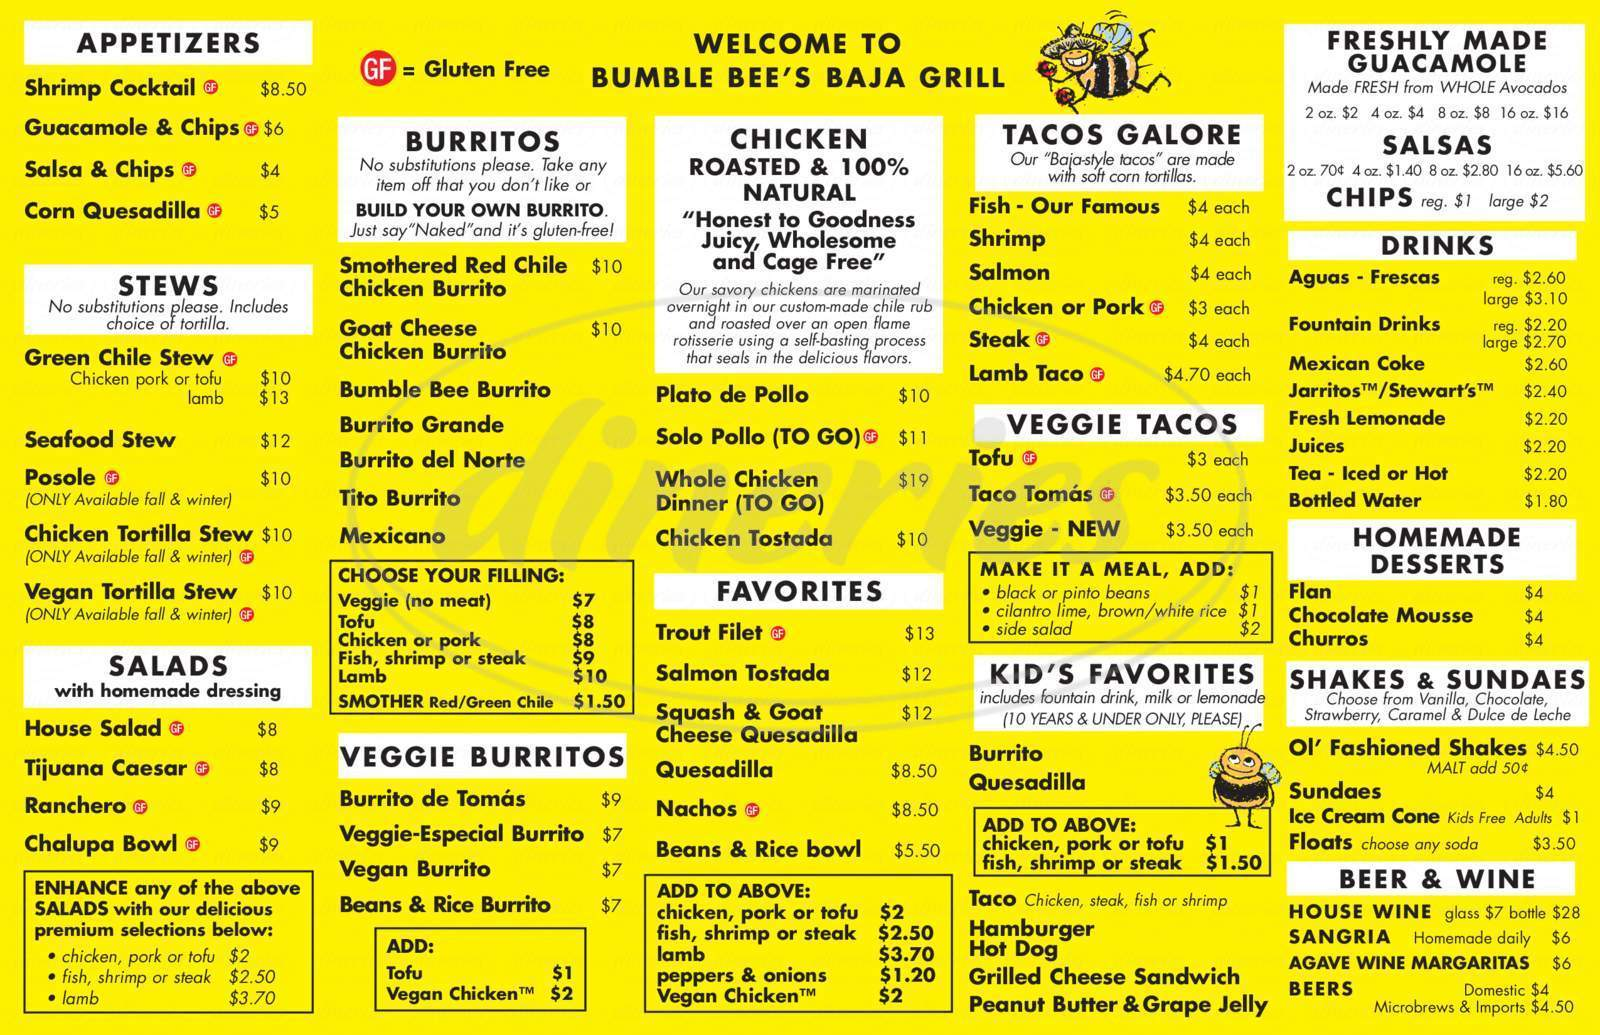 menu for Bumble Bee's Baja Grill